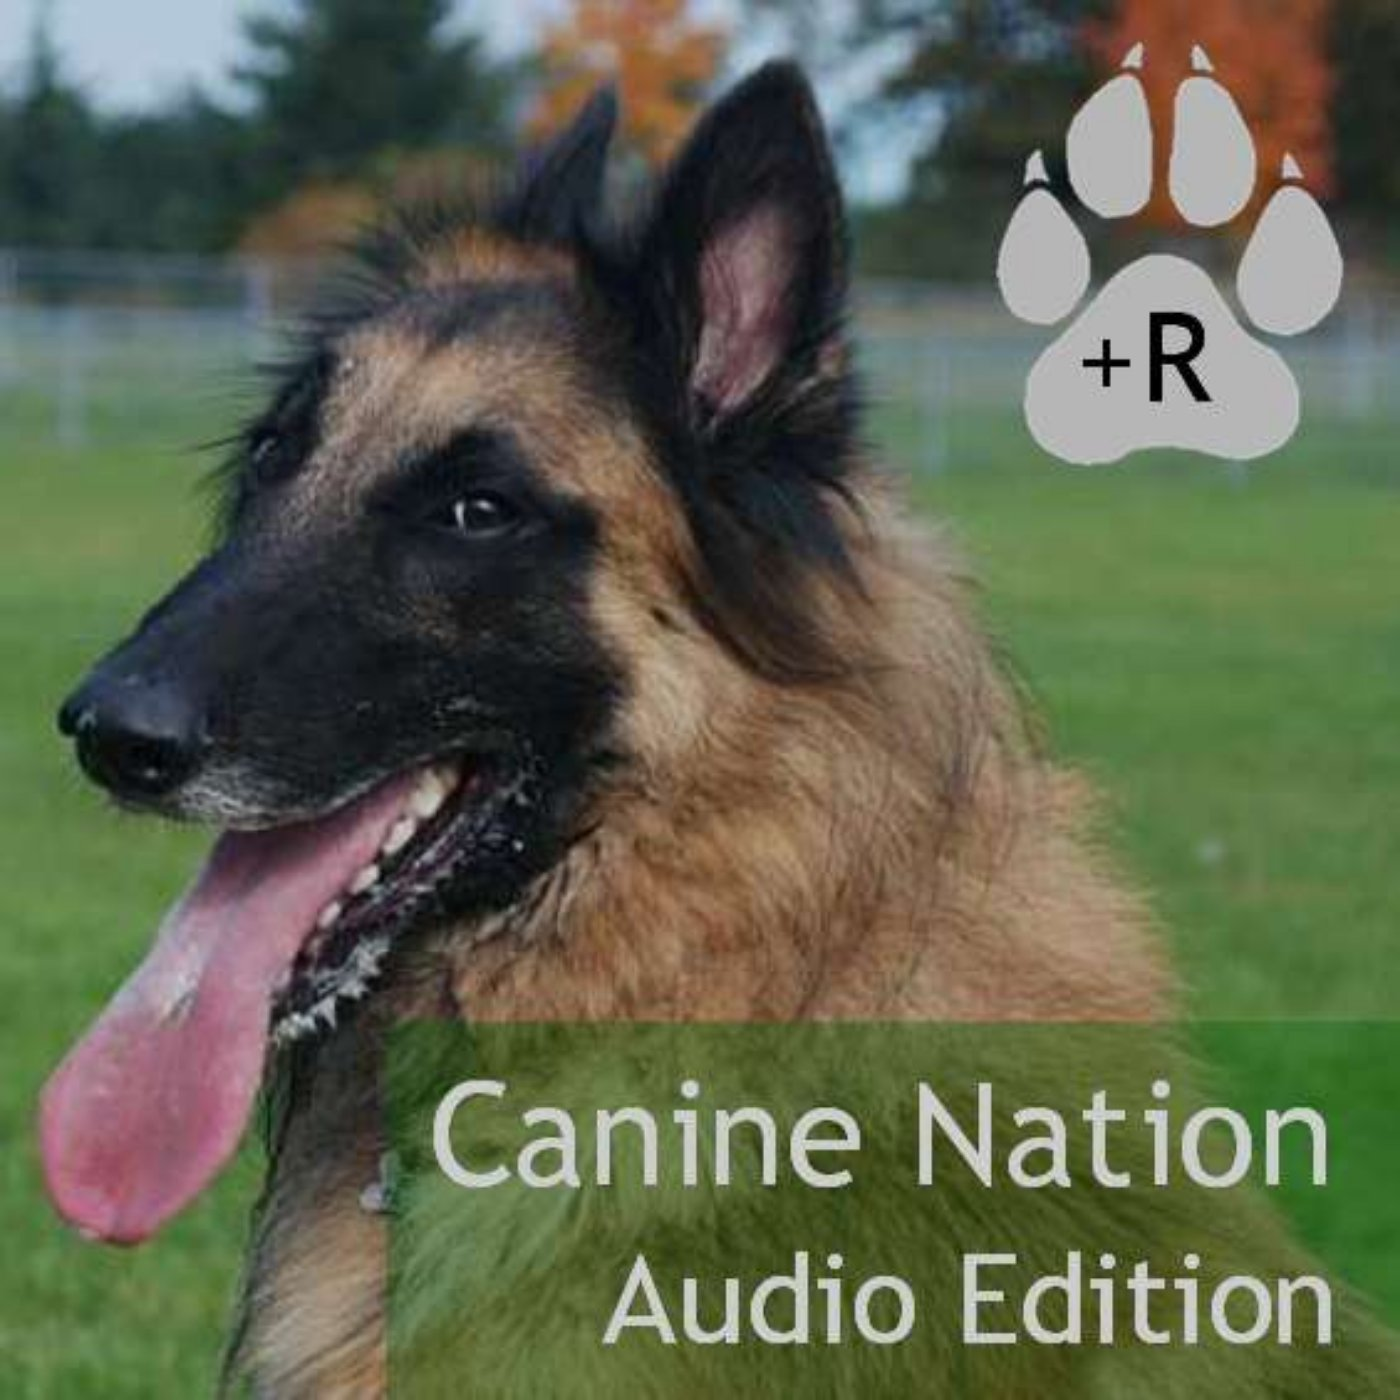 Canine Nation